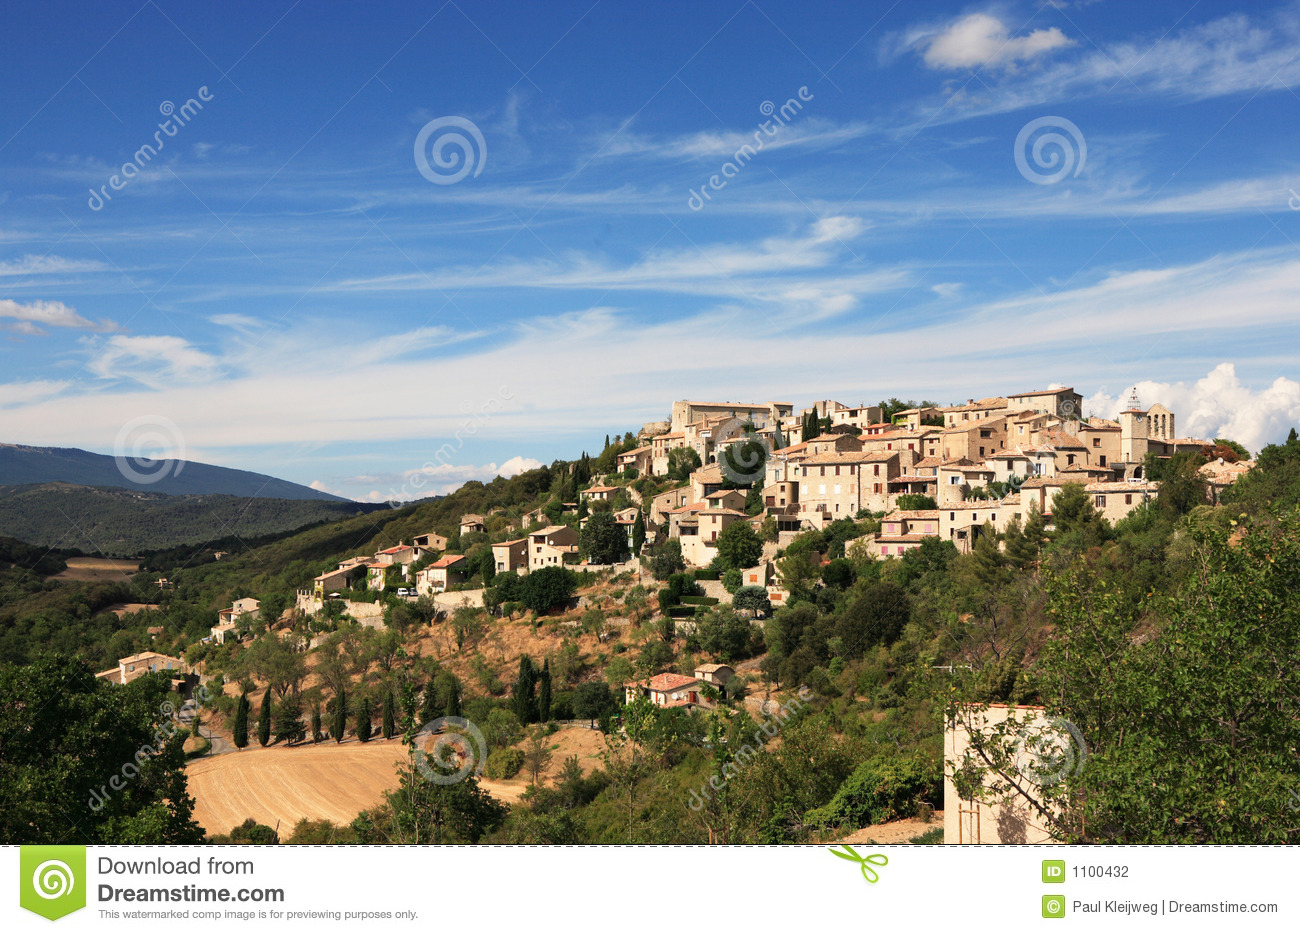 Mountaintop village in France